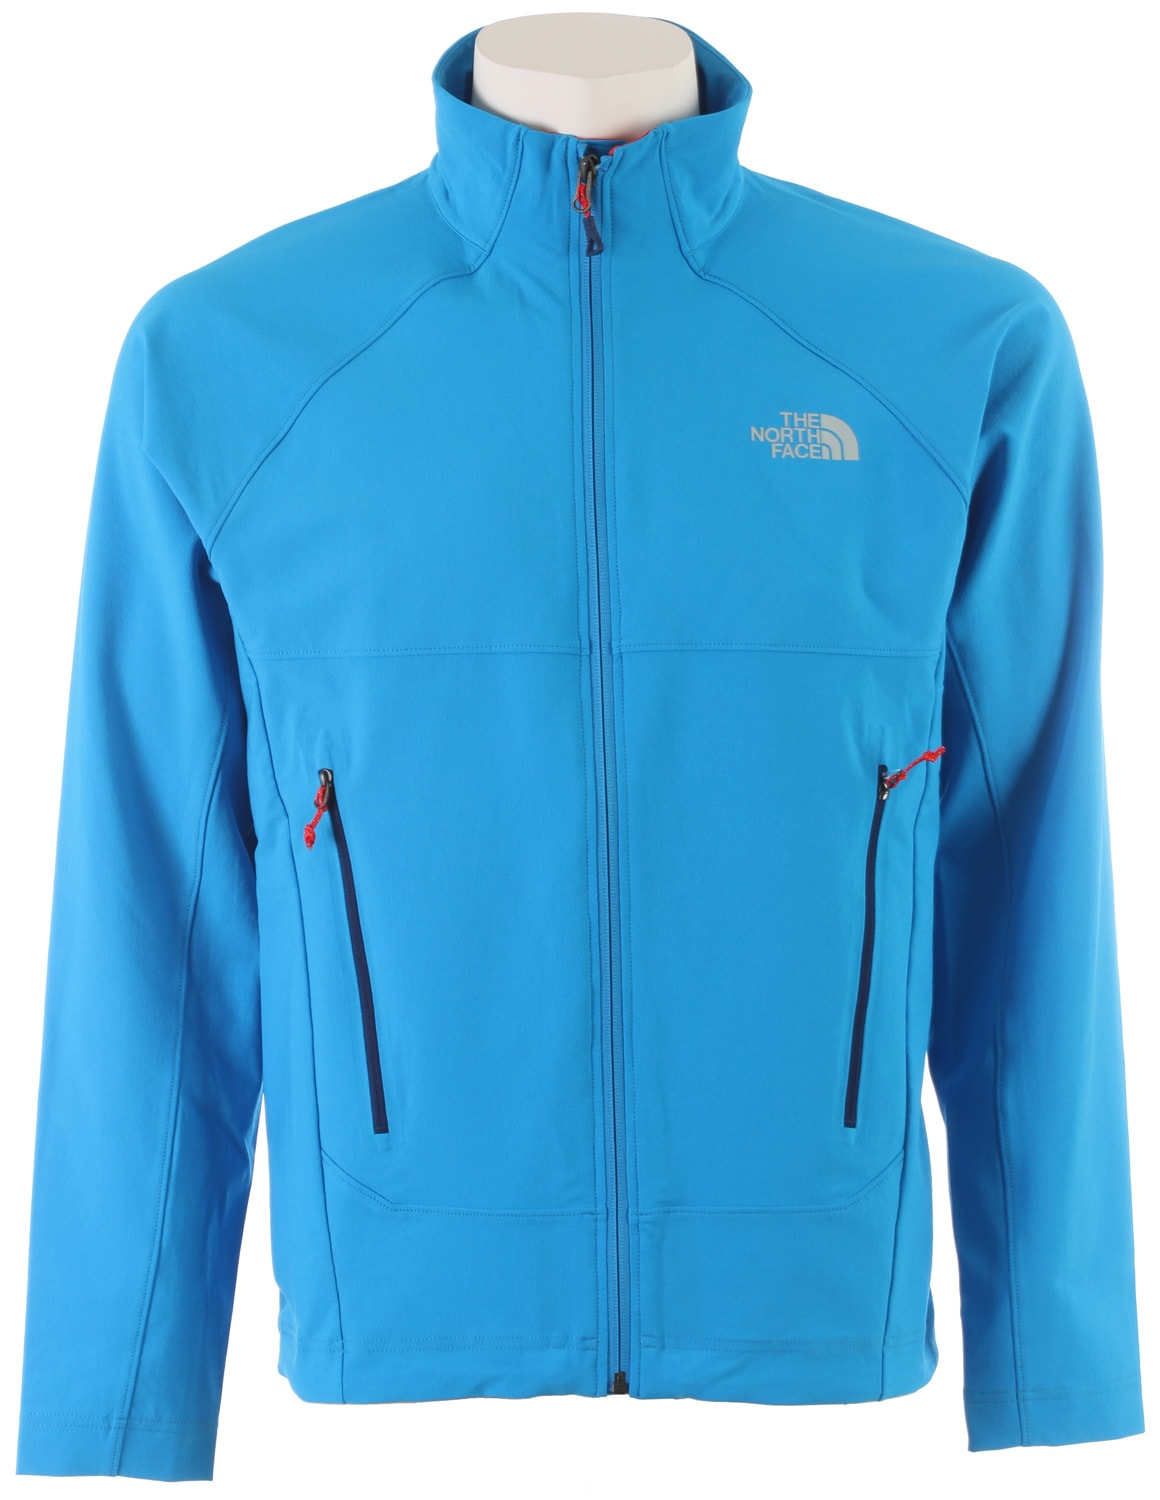 On Sale The North Face Iodin Jacket Up To 55% Off